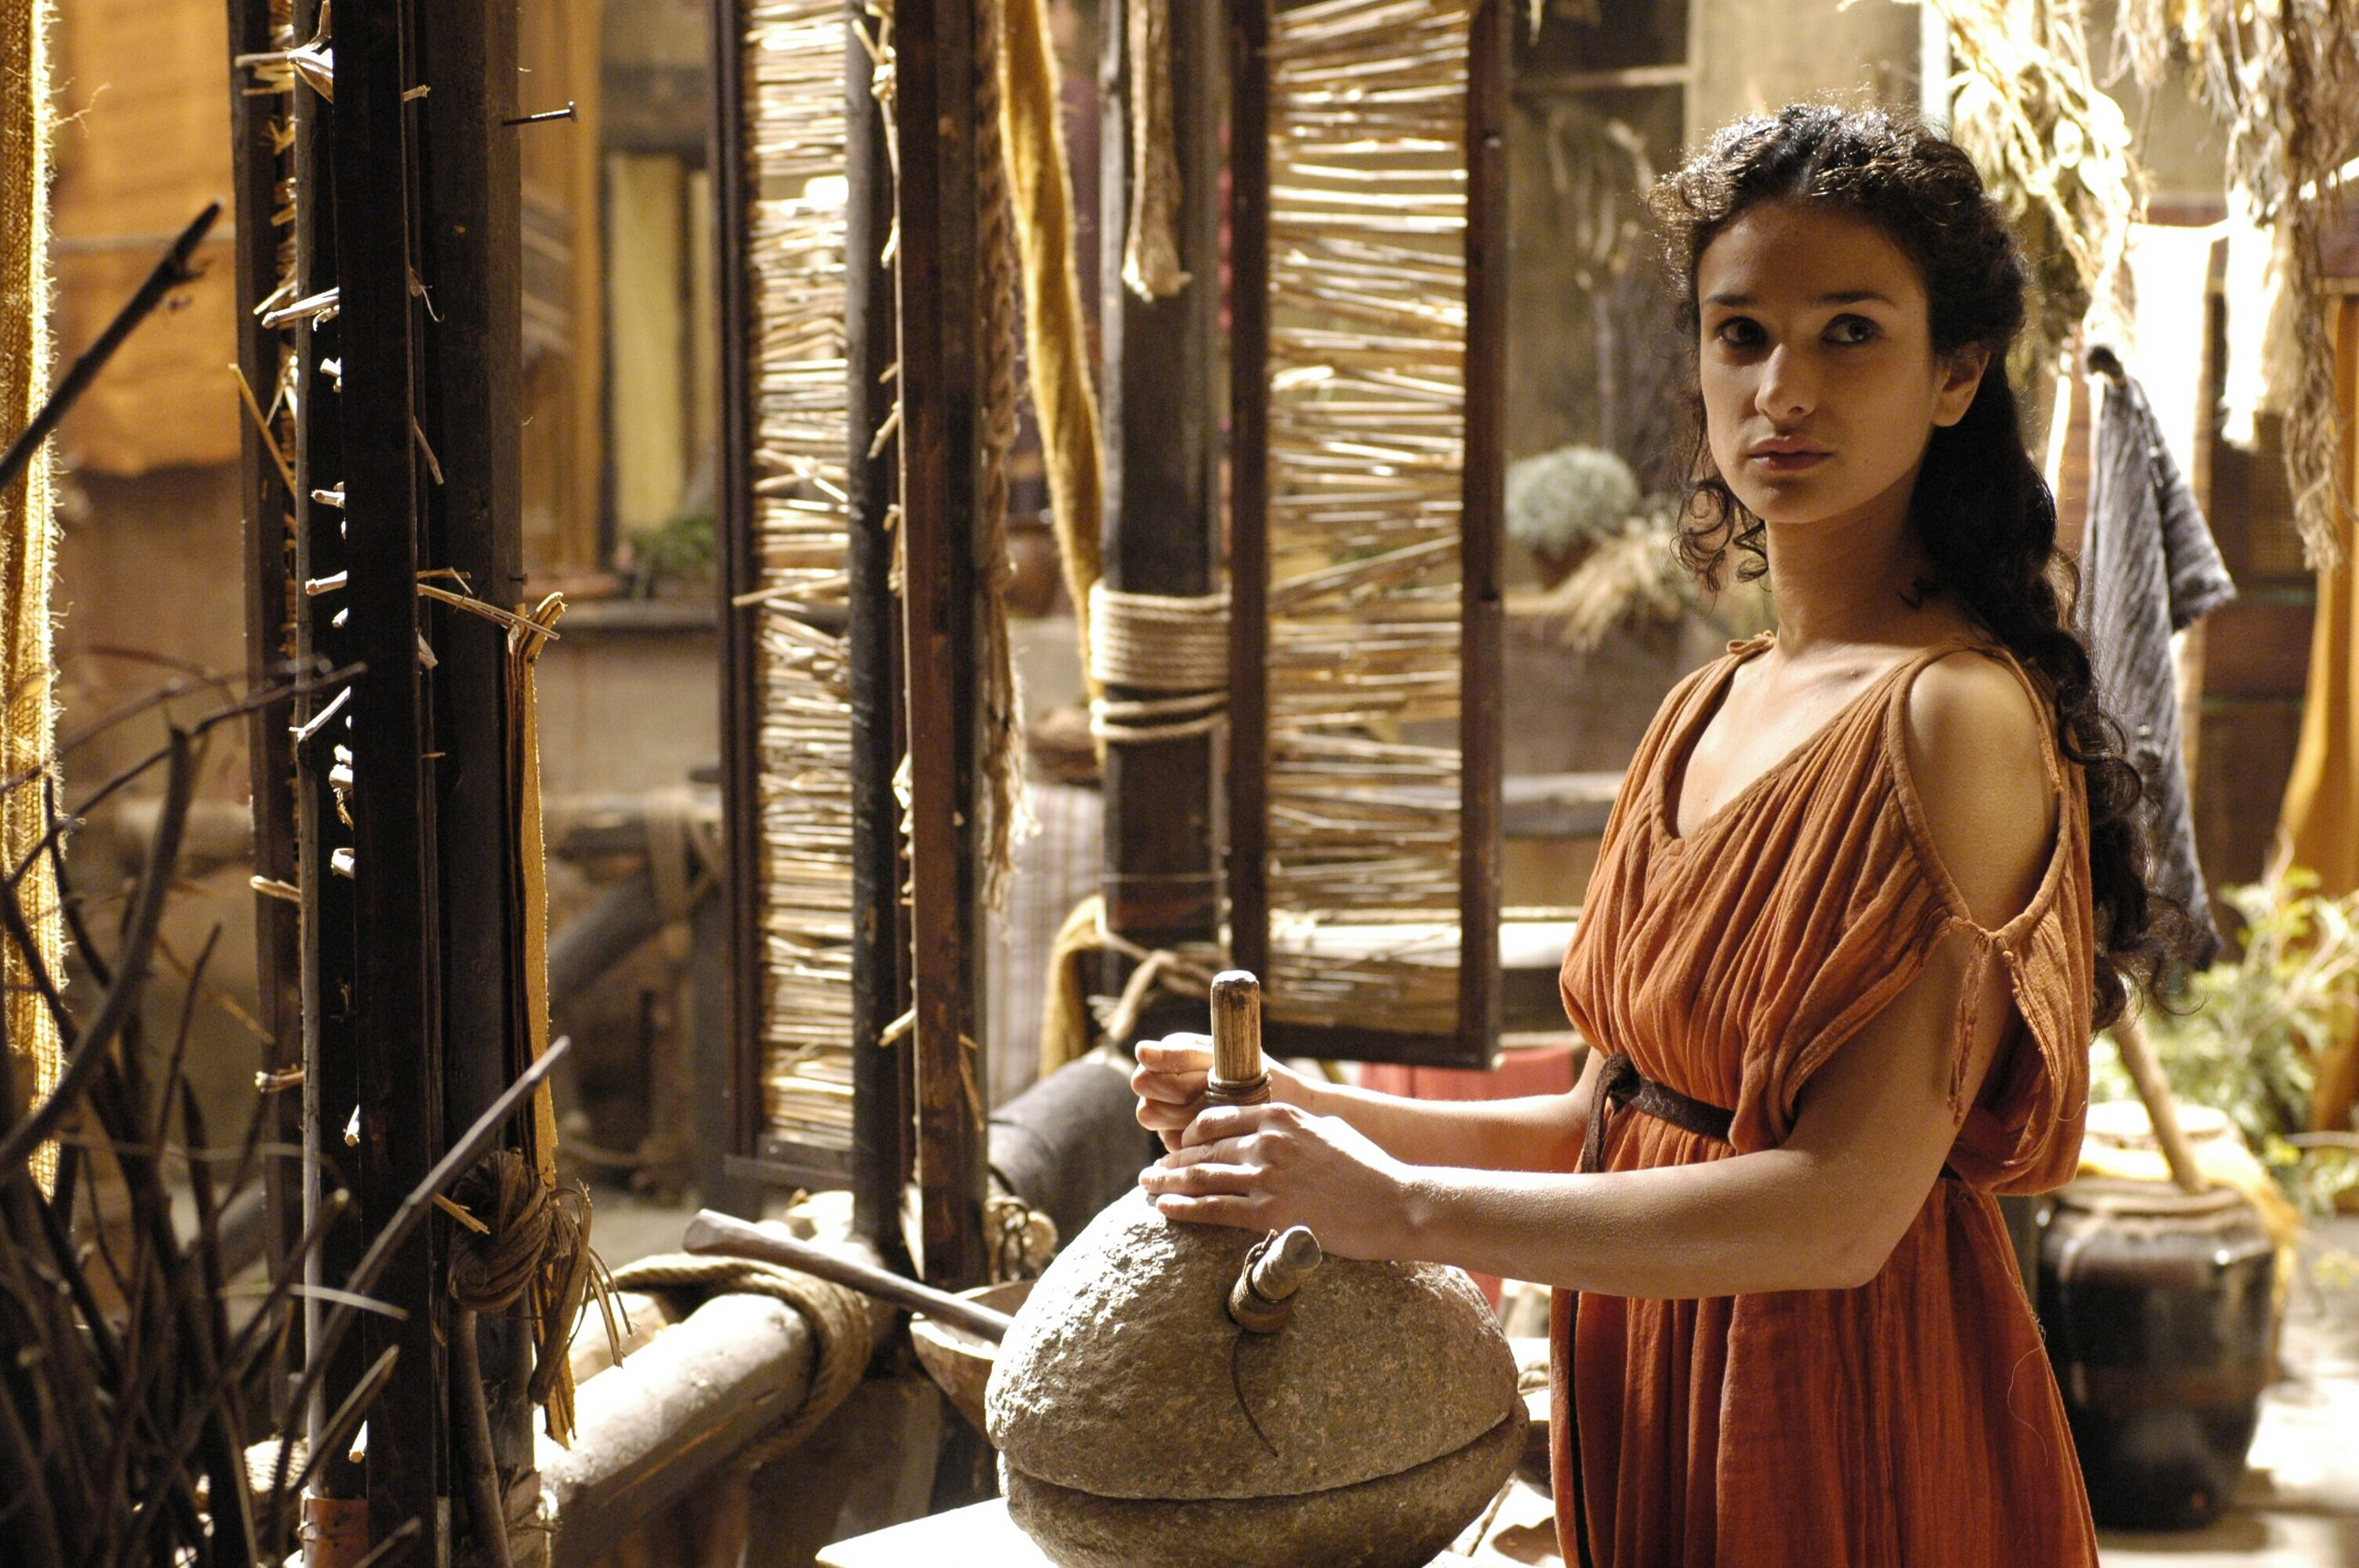 List of Rome episodes